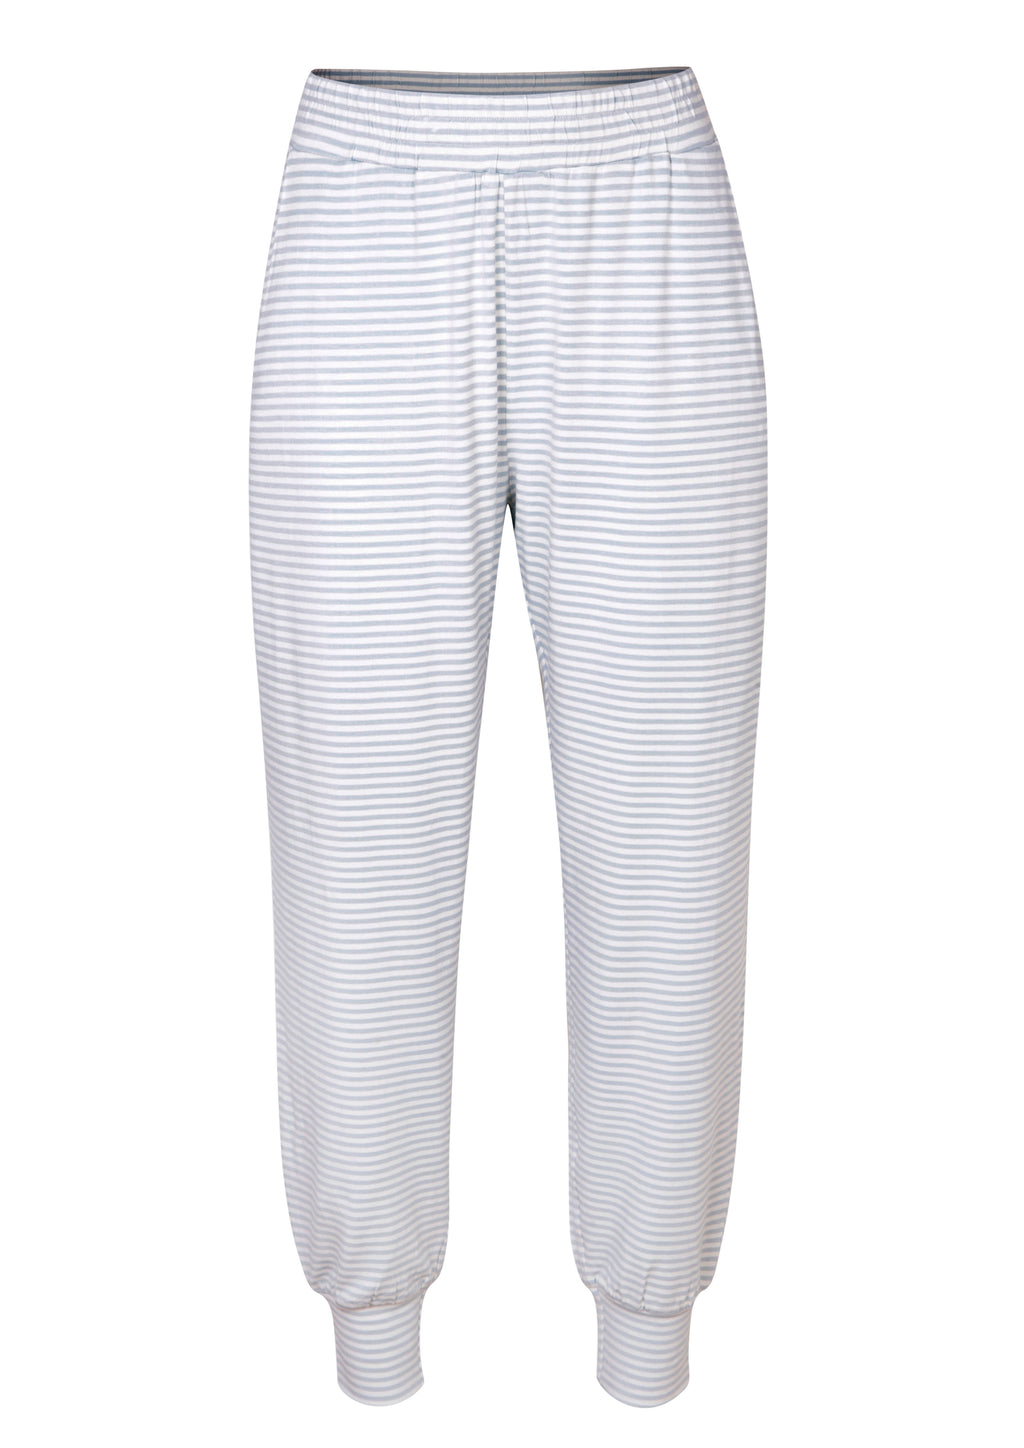 Seafoam Sleep Set | Sleep Pants